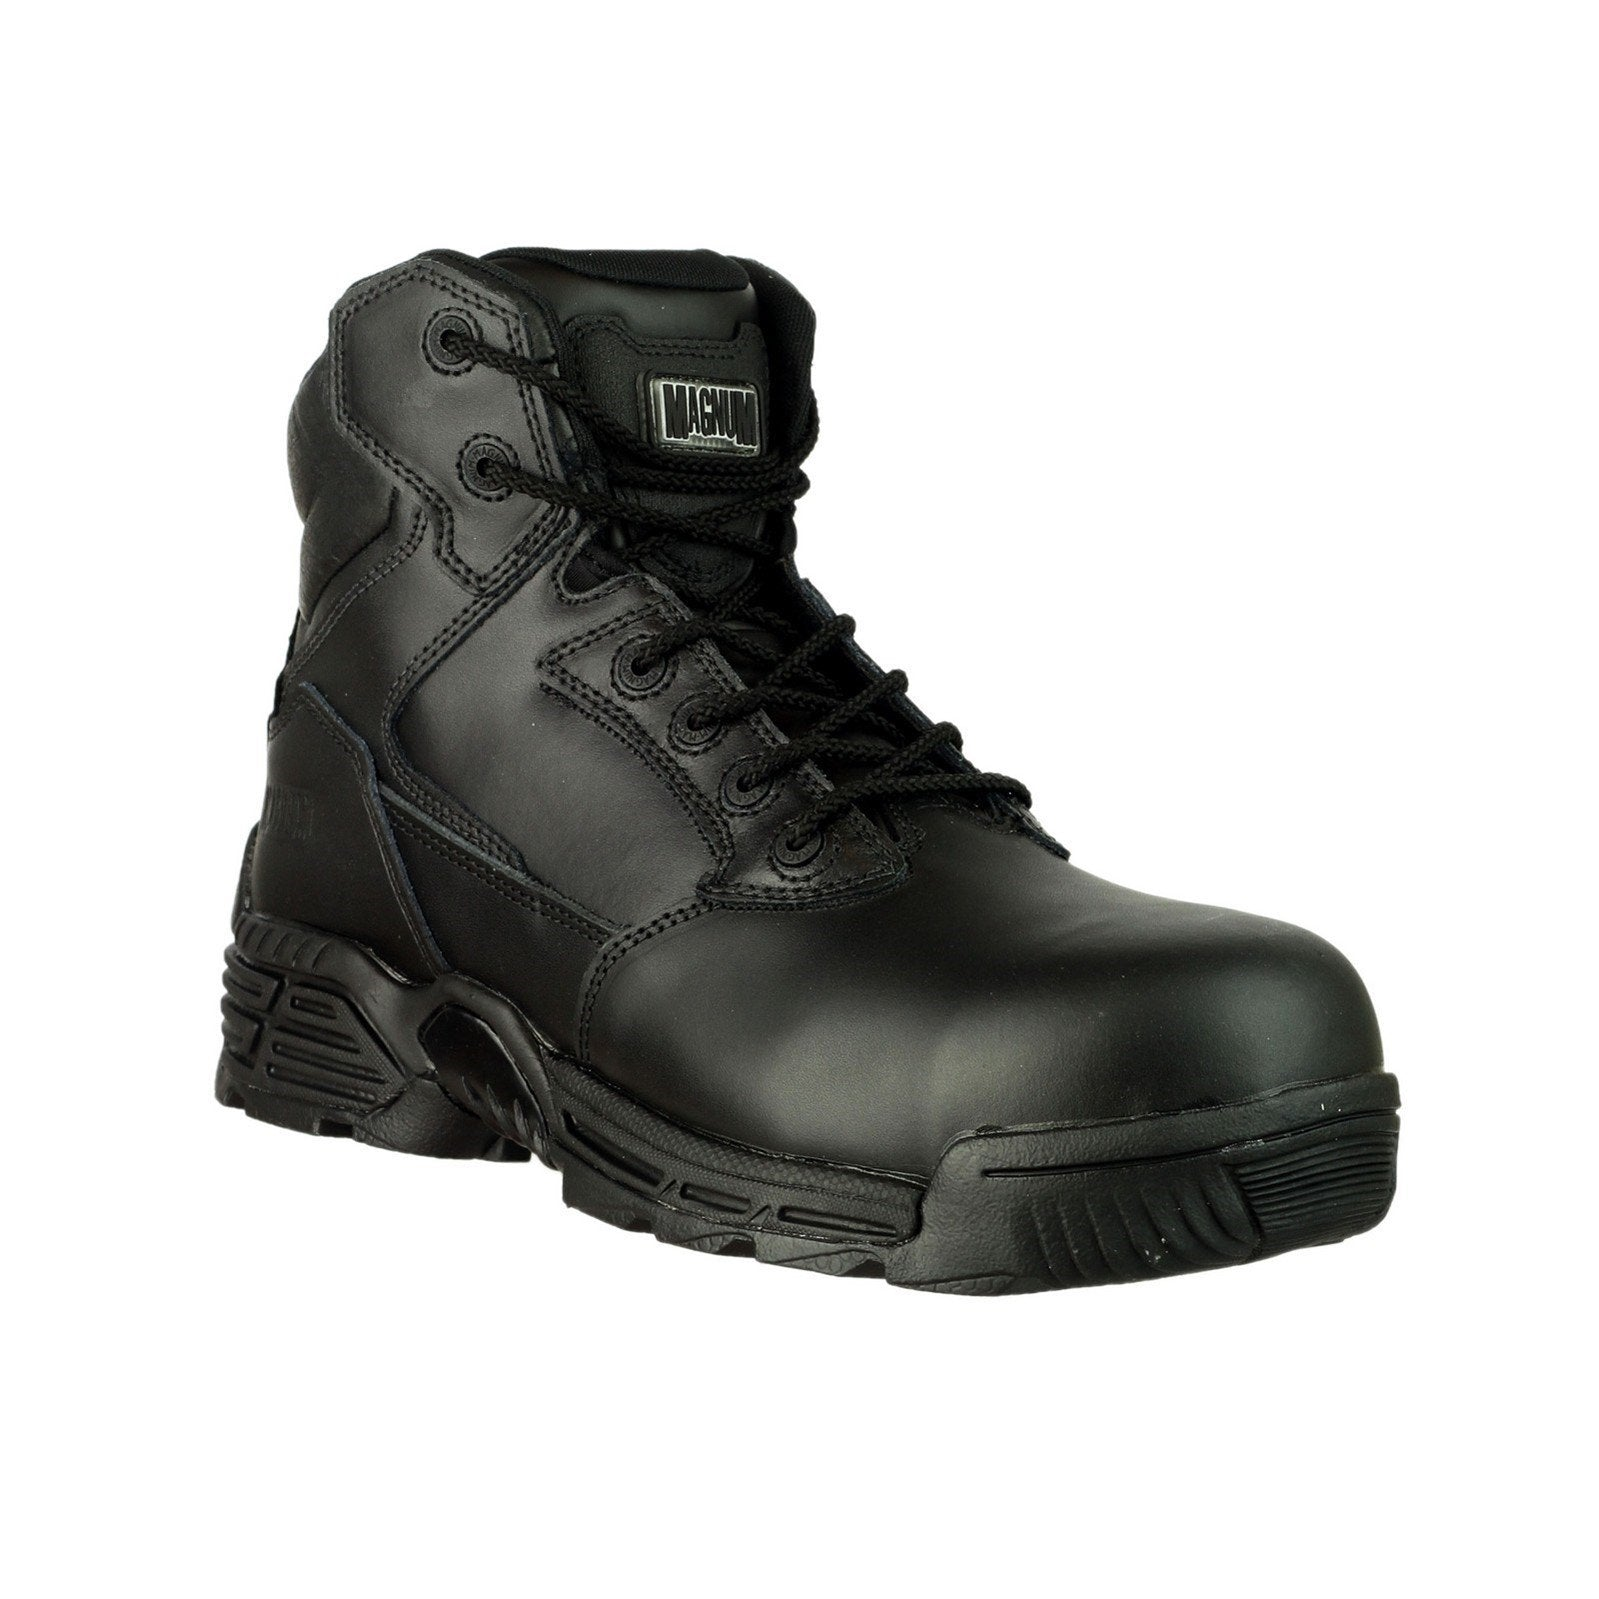 "Magnum Stealth Force 6"" CT/CP Boots"